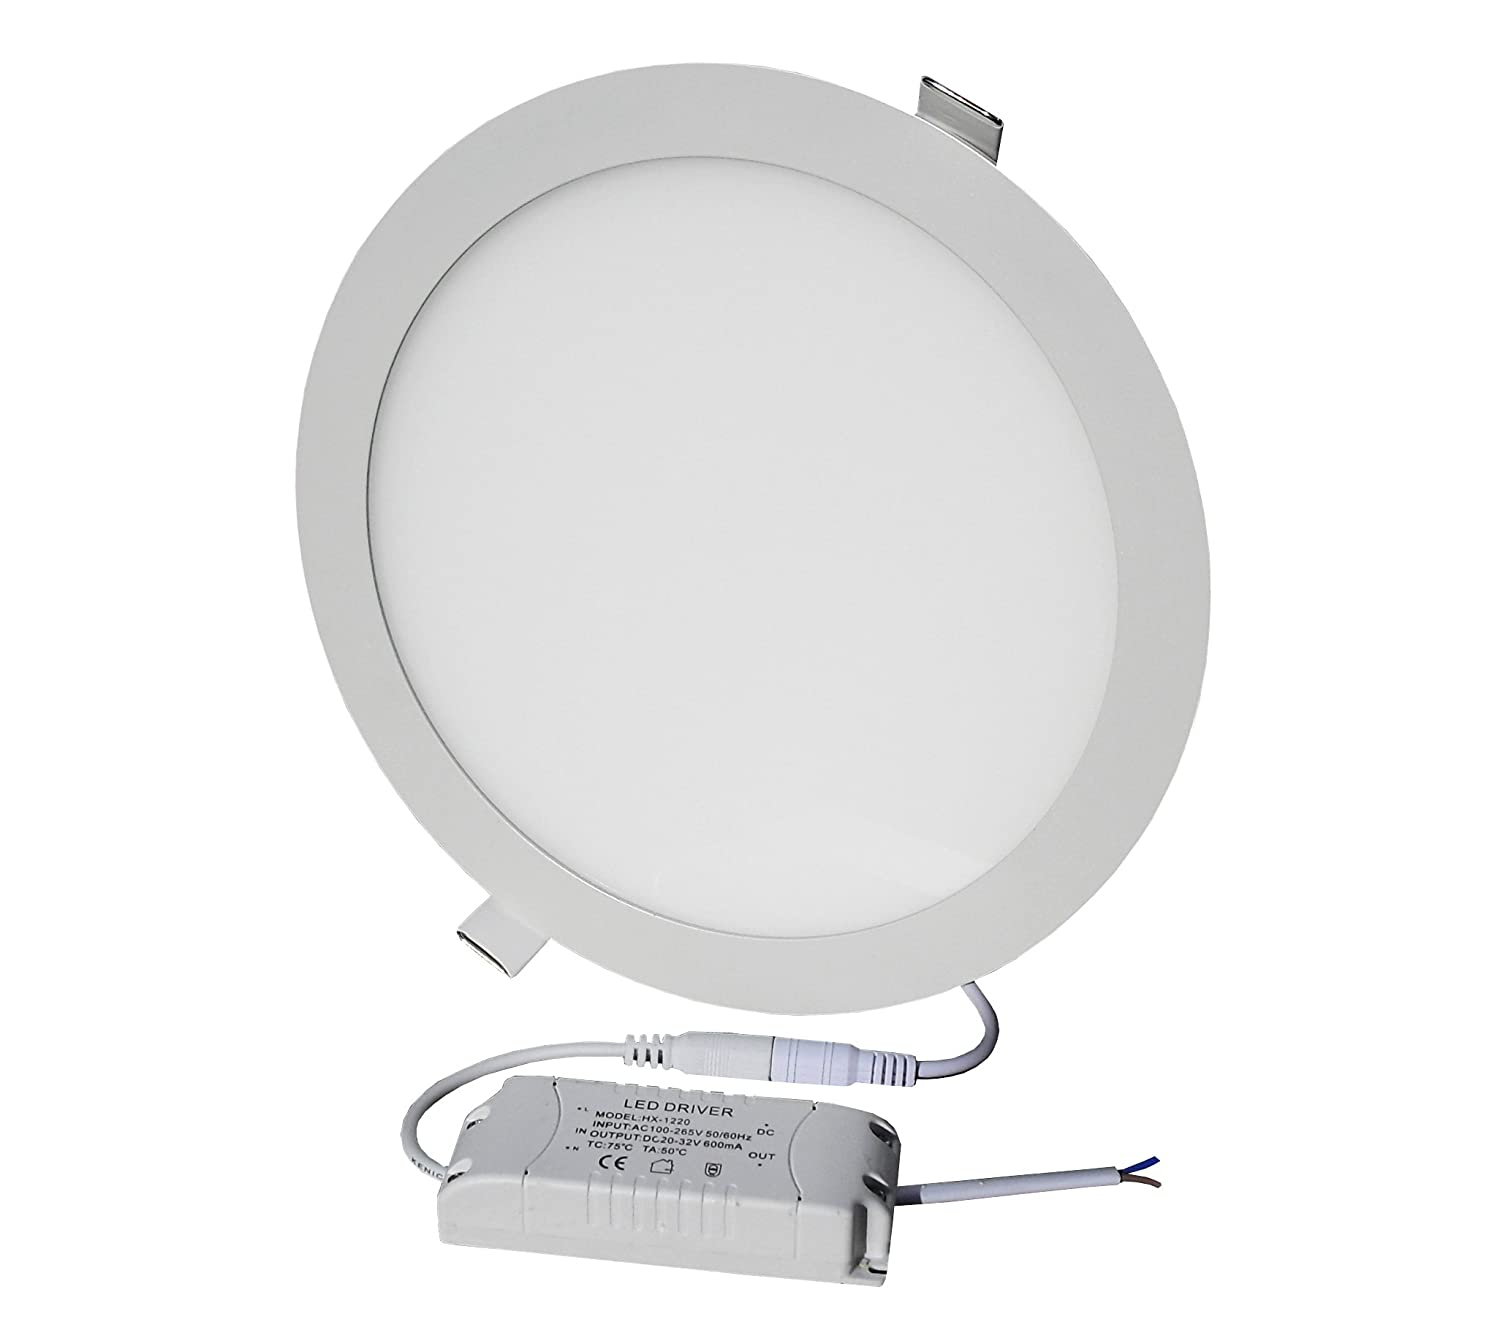 Lowenergie 18w LED Round Ceiling Panel Light Day White Recessed Down Lighting, 225mm dia, 150w Halogen Equivalent (6000K)